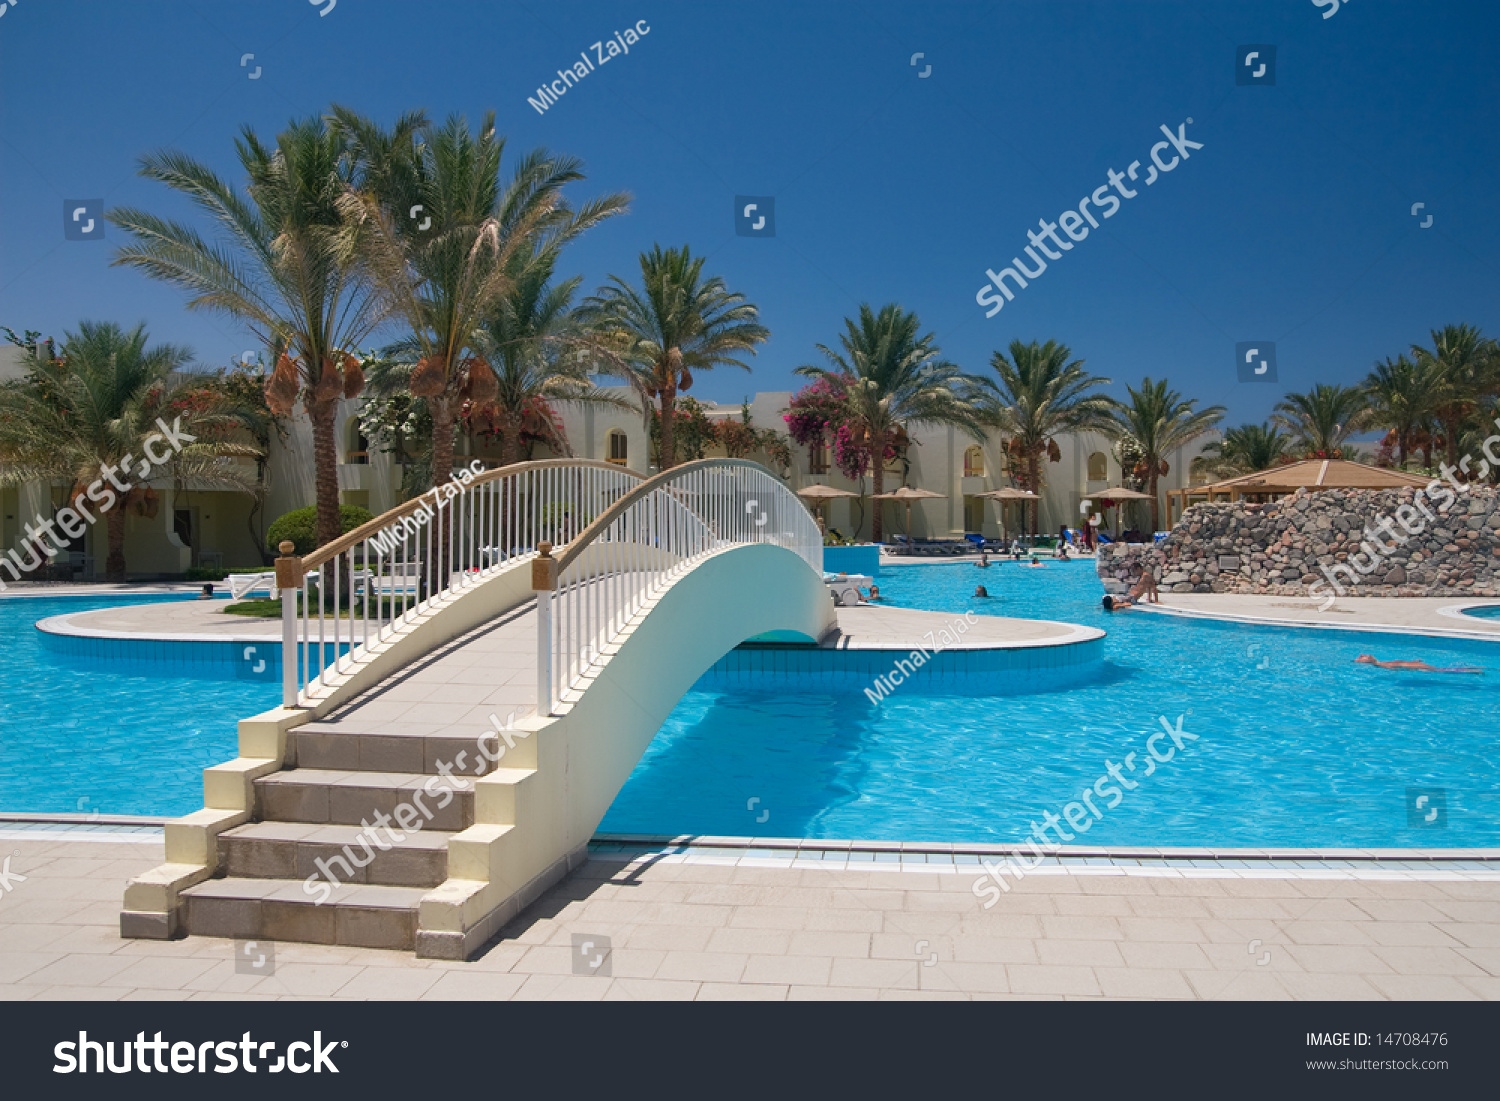 Egyptian Hotel Swimming Pool With Bridge Stock Photo 14708476 Shutterstock